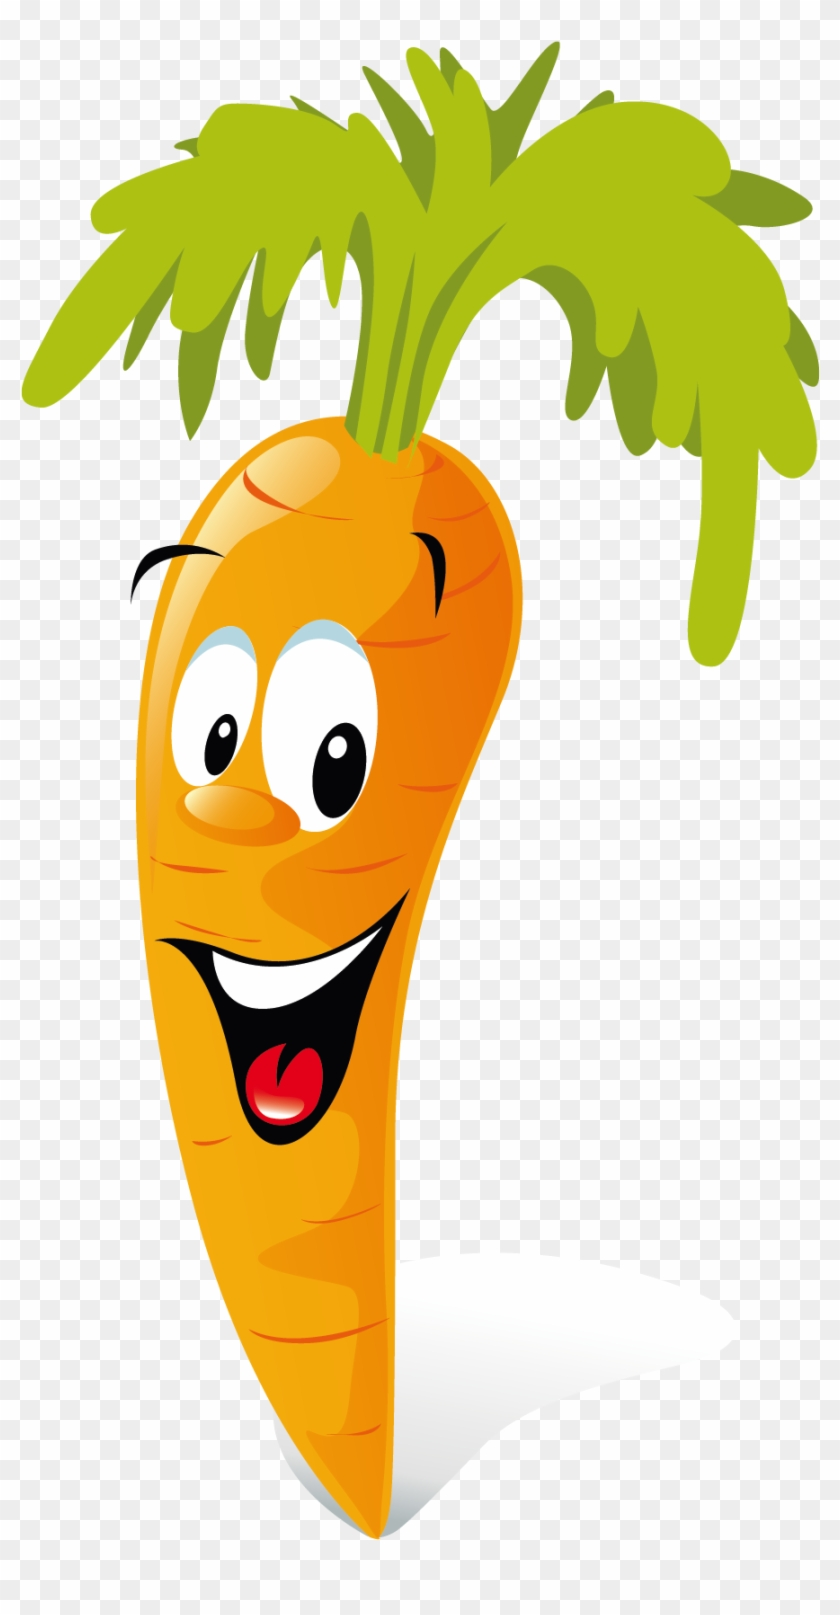 Carrot Animation Vegetable Clip Art - Fruit And Vegetables Cartoon #253277